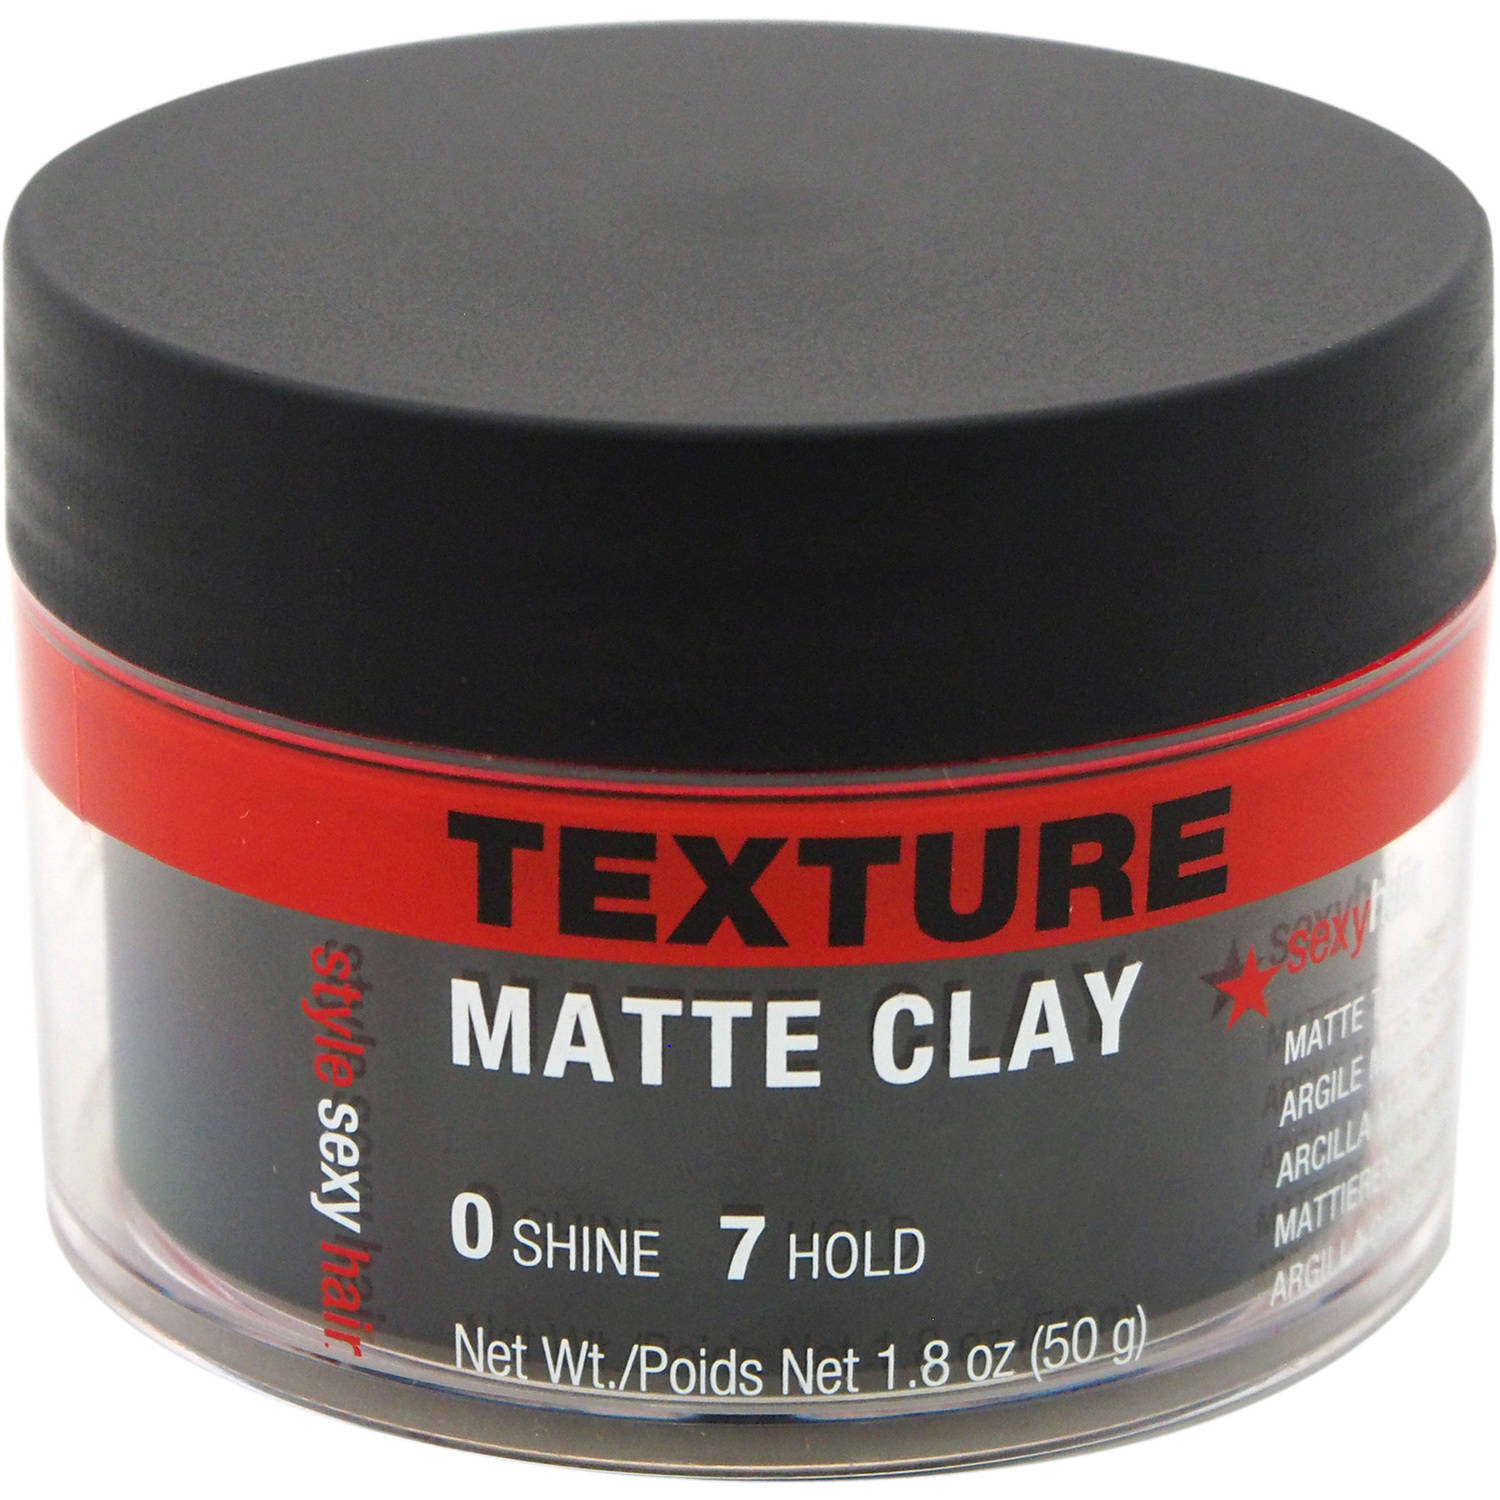 Style Sexy Hair Matte Clay Texturizing Clay by Sexy Hair for Men, 1.8 oz